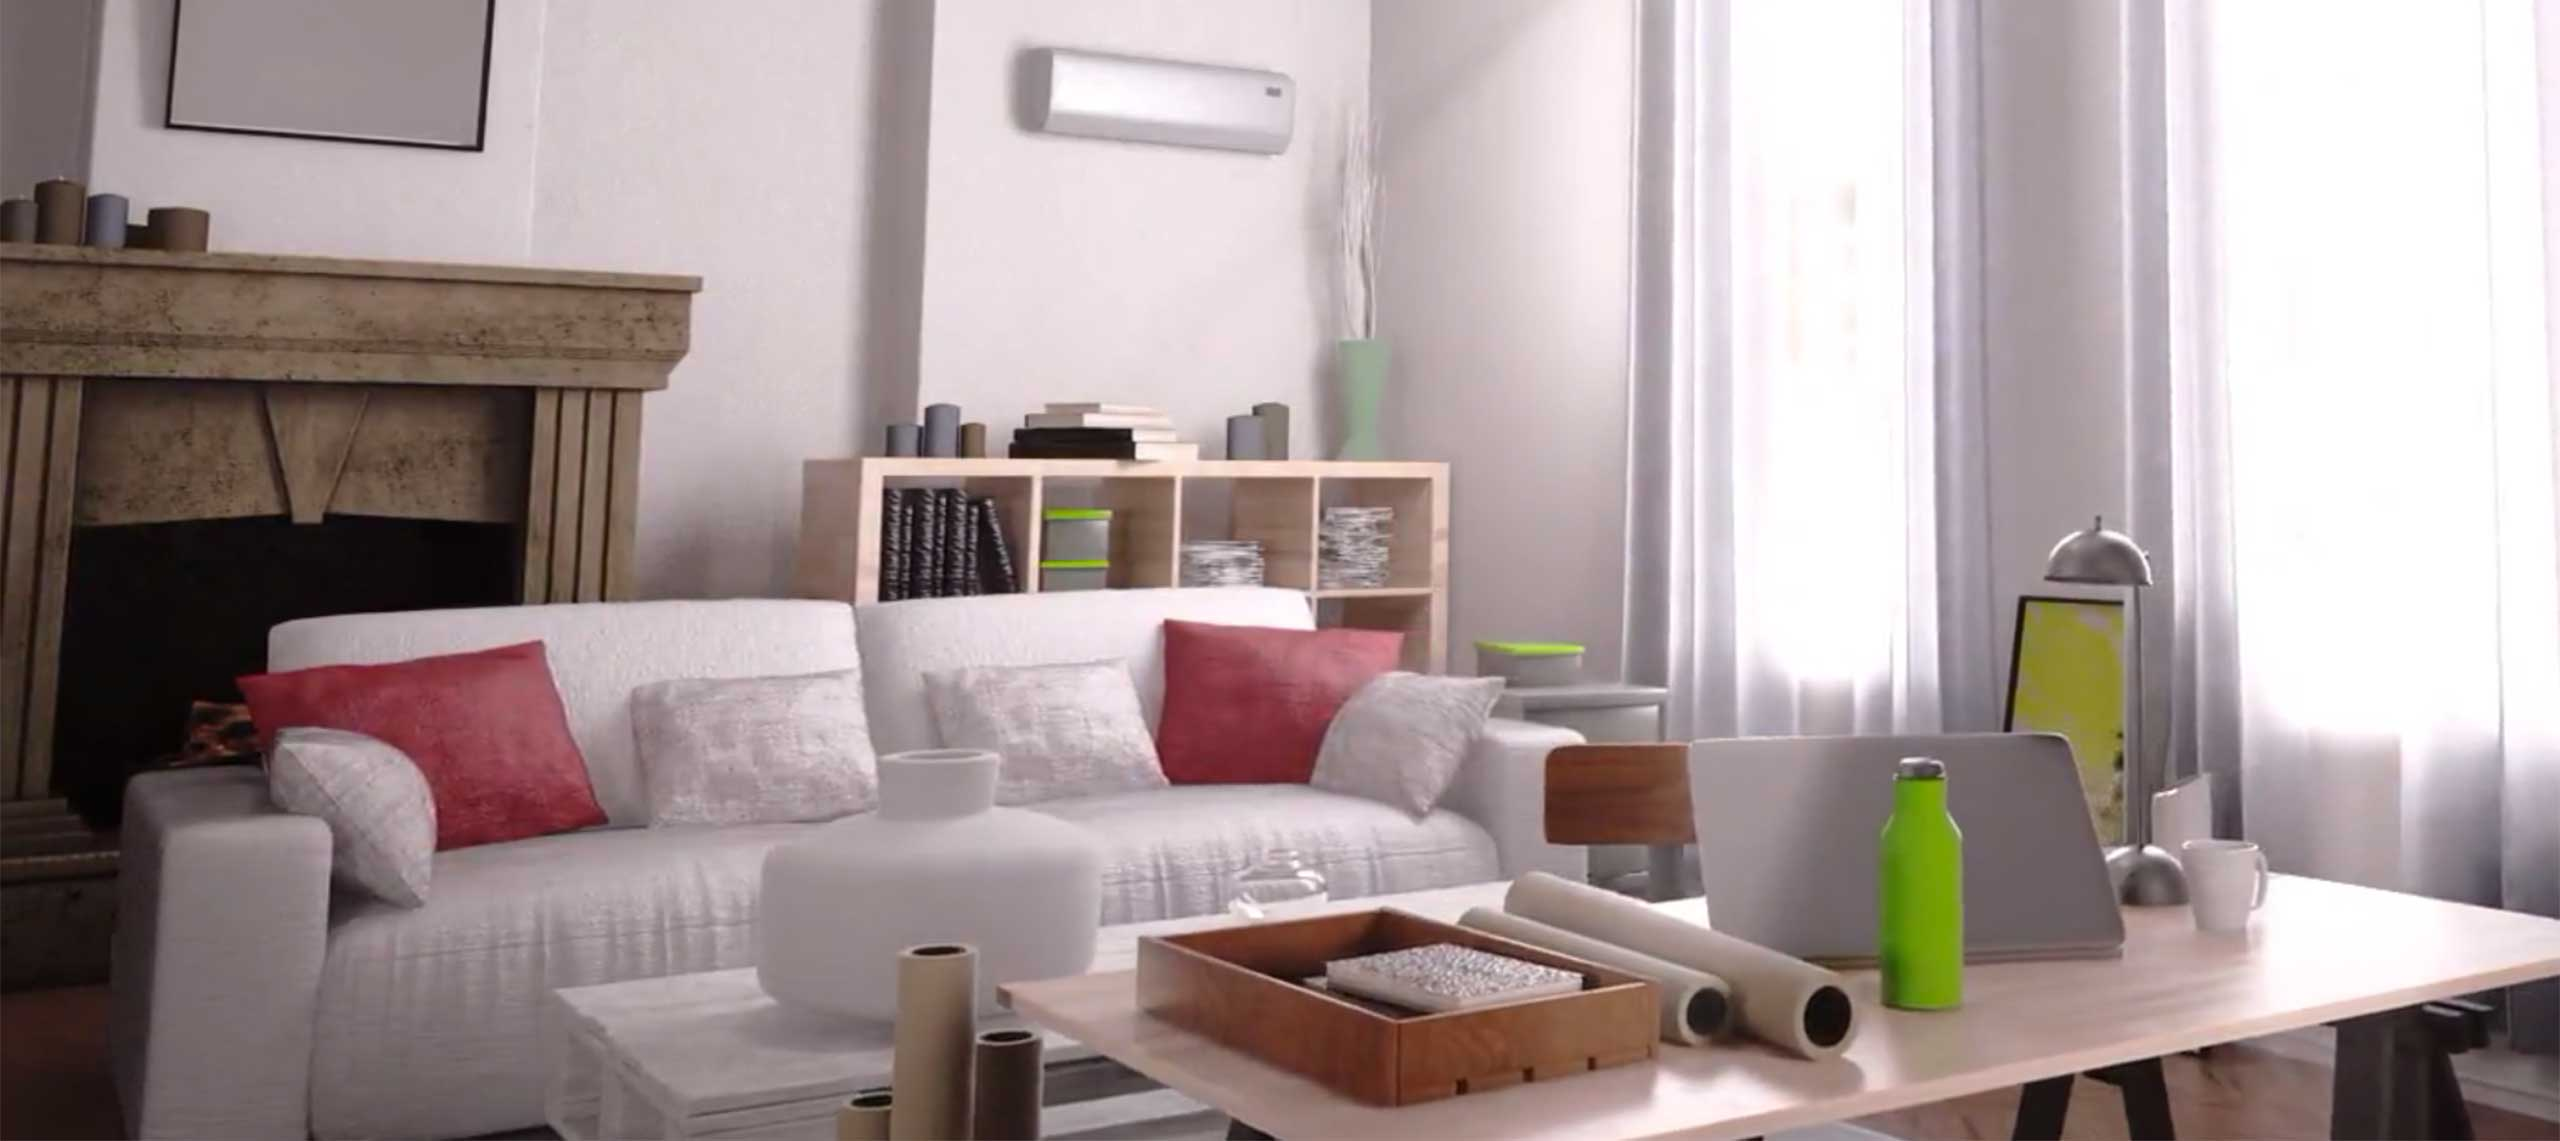 split mini and heating mount dual hei zone en wid floor mitsubishi article constrain fit heat conditioner cooling btu normal ductless air pump